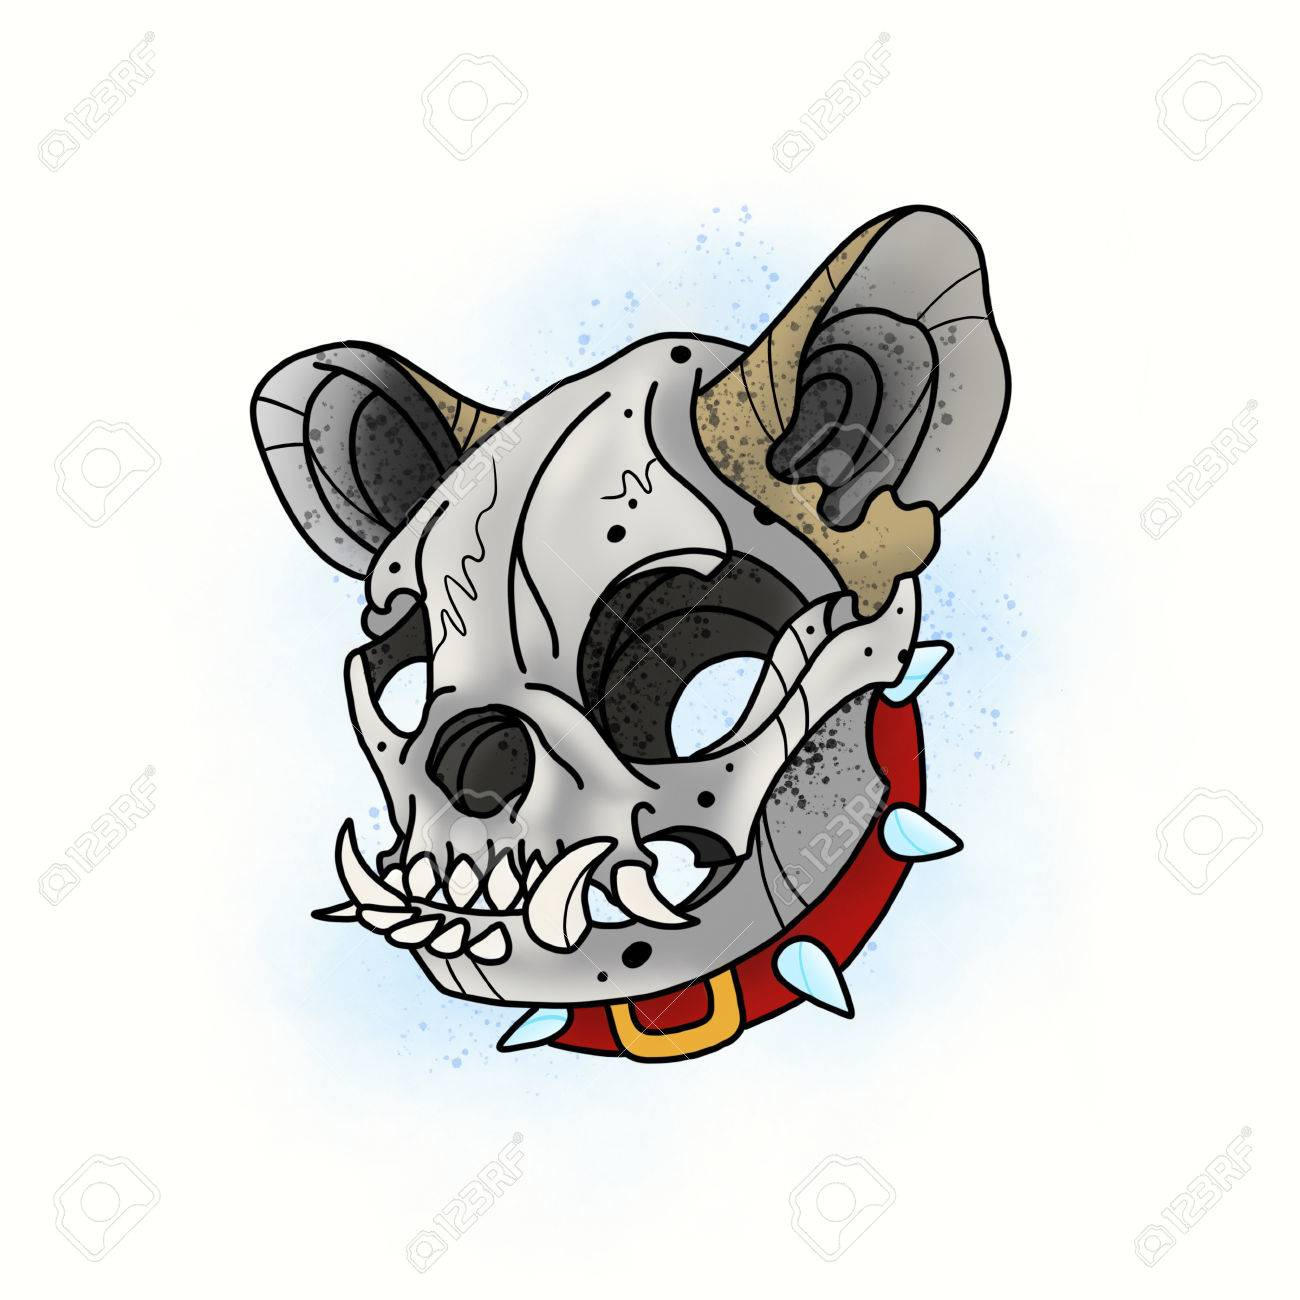 Dog Skull Stylized Skeleton French Bulldog Cartoon Illustration